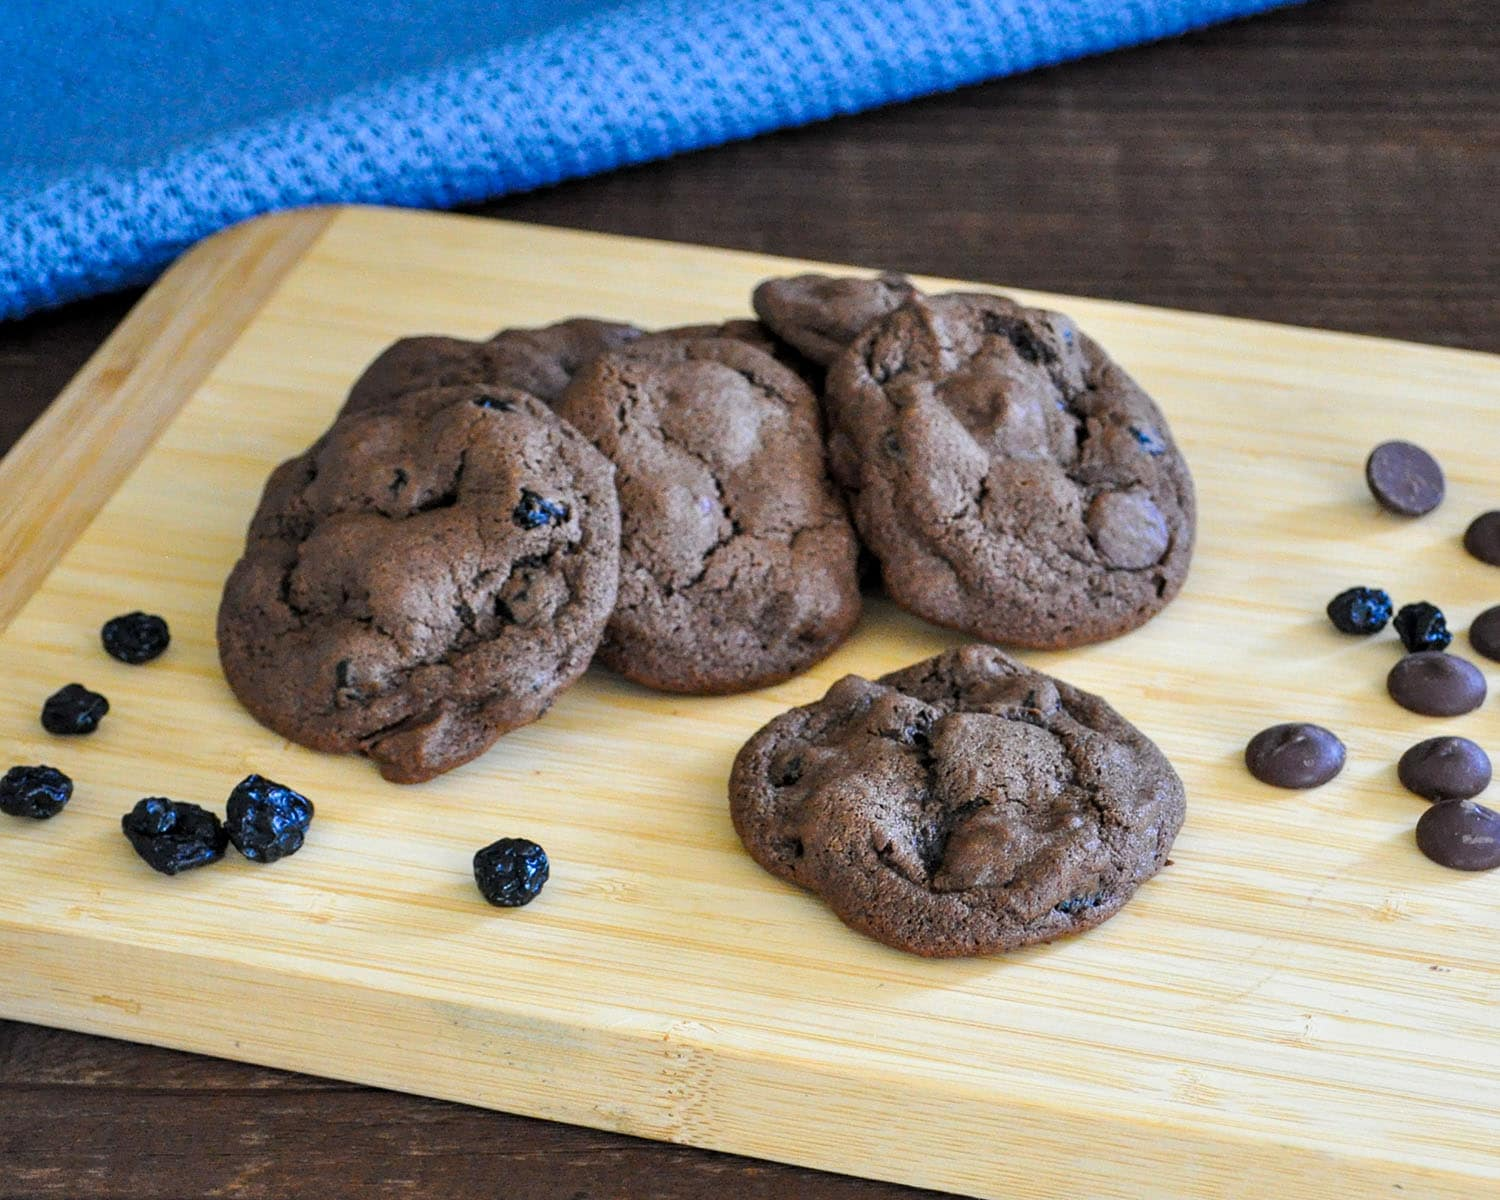 a pile of chocolate cookies filled with dried blueberries and chocolate chips on a bamboo board